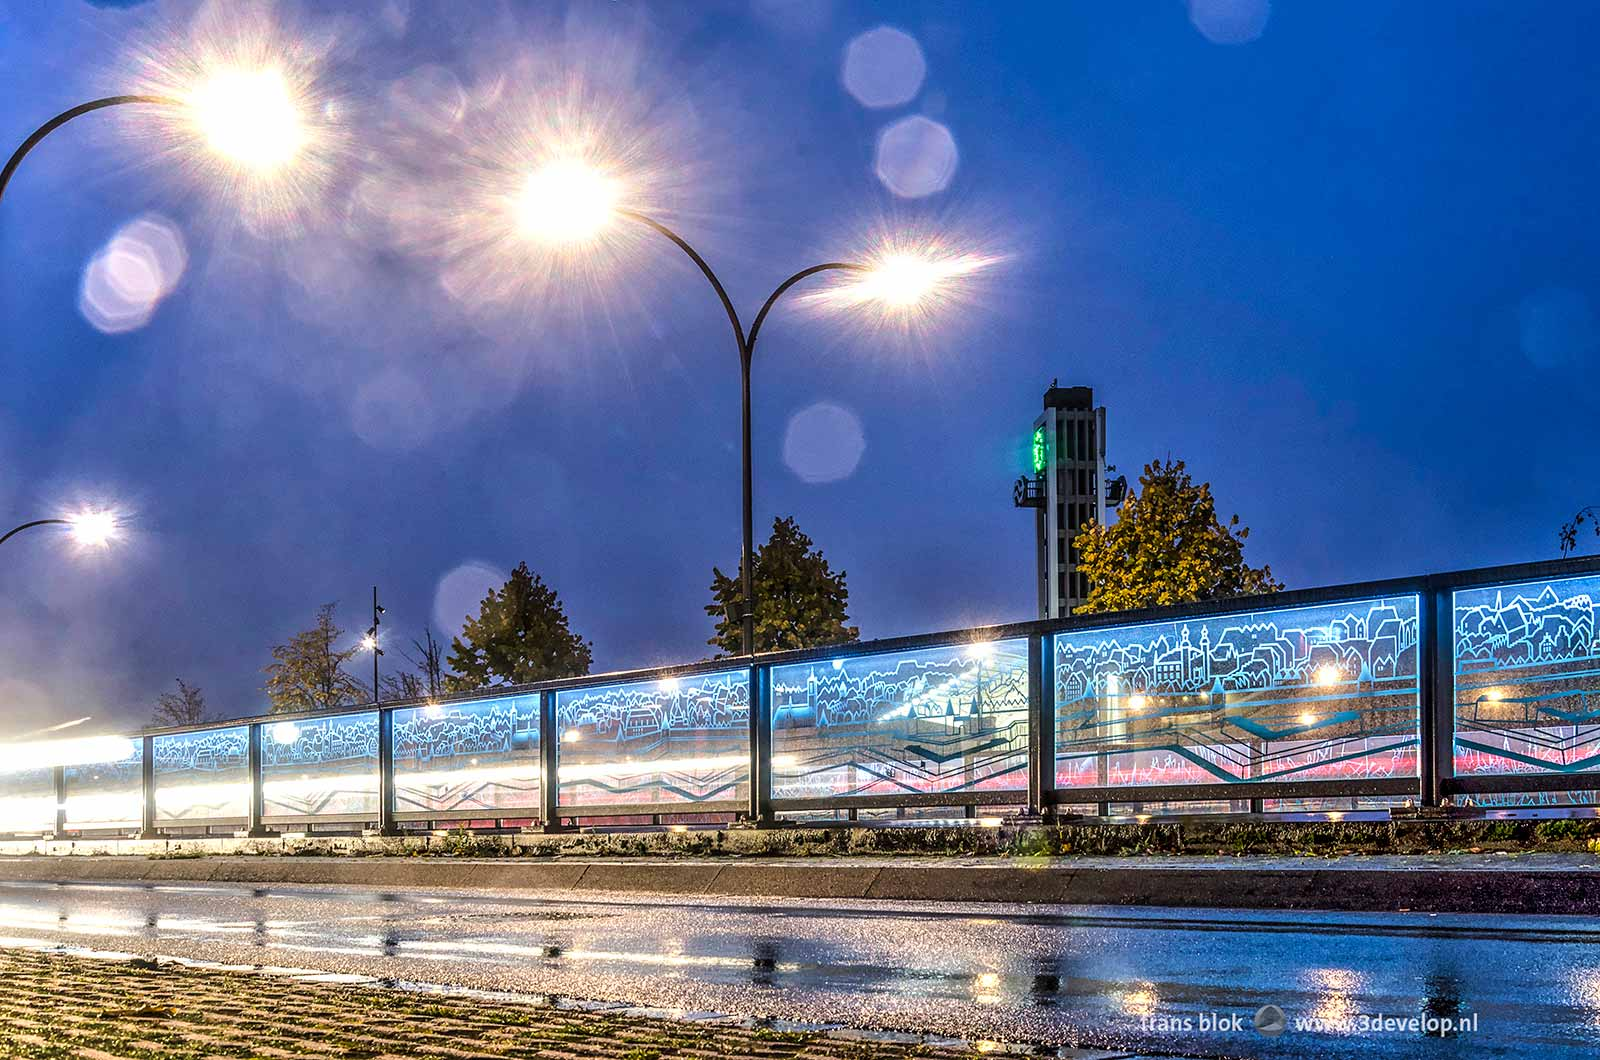 Photo of the glas panels on Koninginneplein in Venlo, The Netherlands, made on a rainy day during the blue hour.